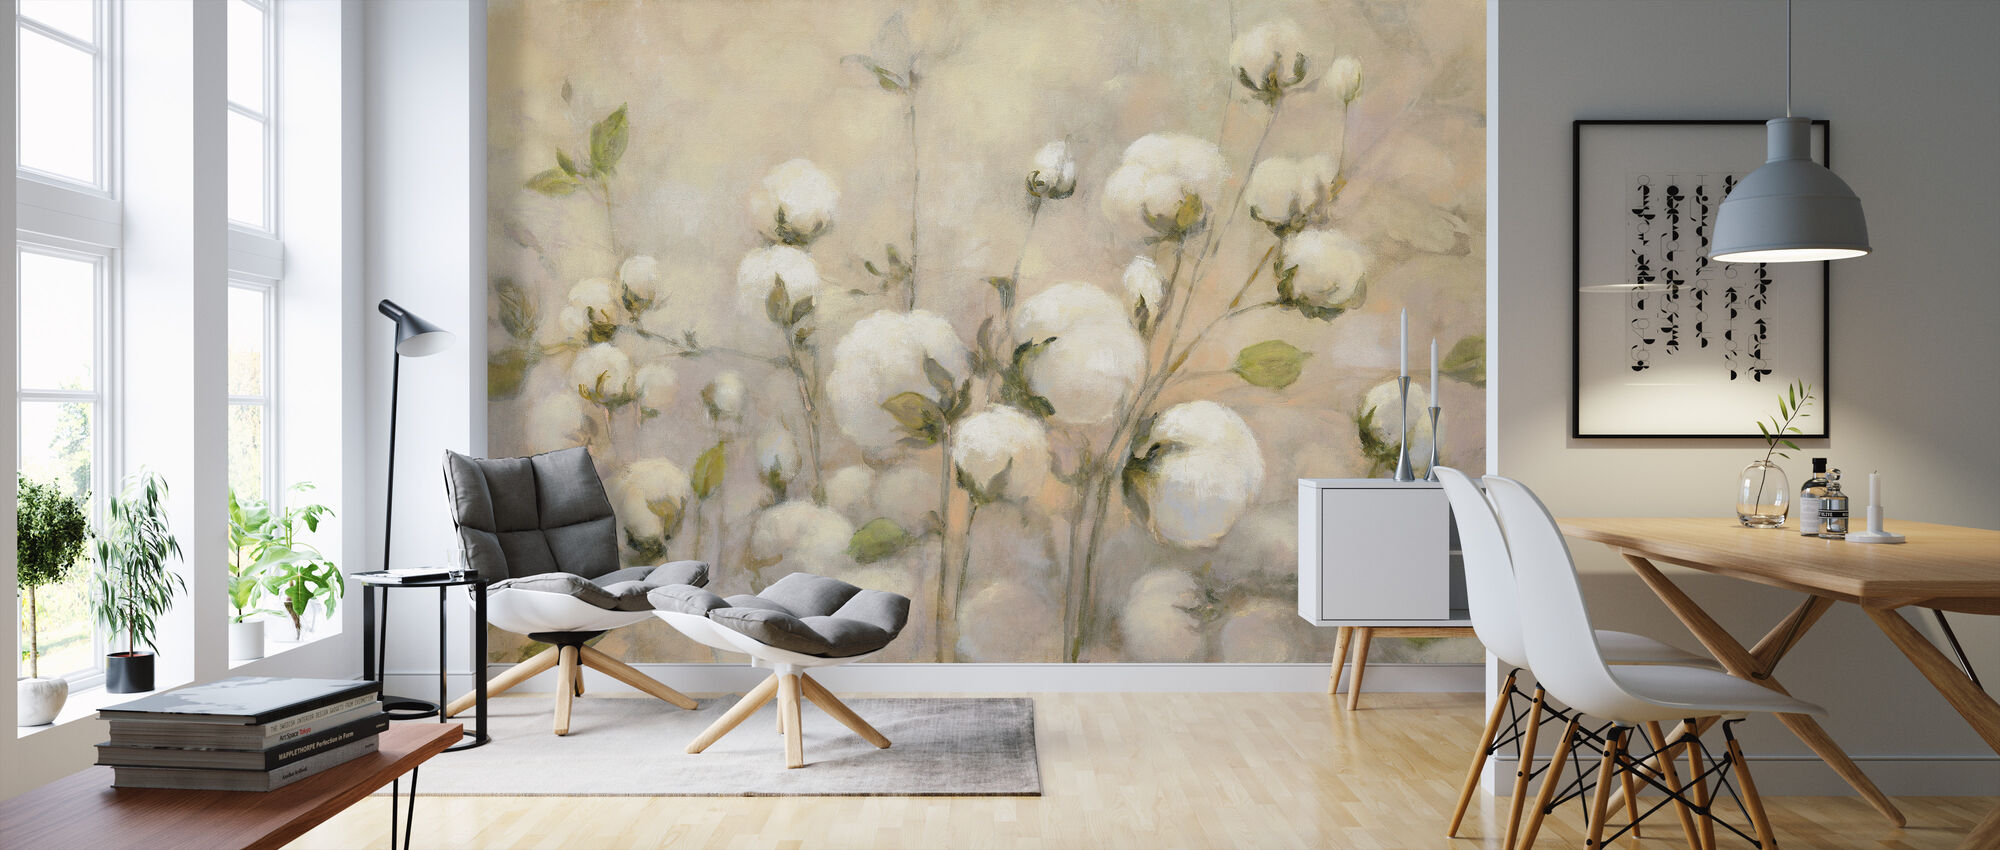 Cotton Field - Wallpaper - Living Room